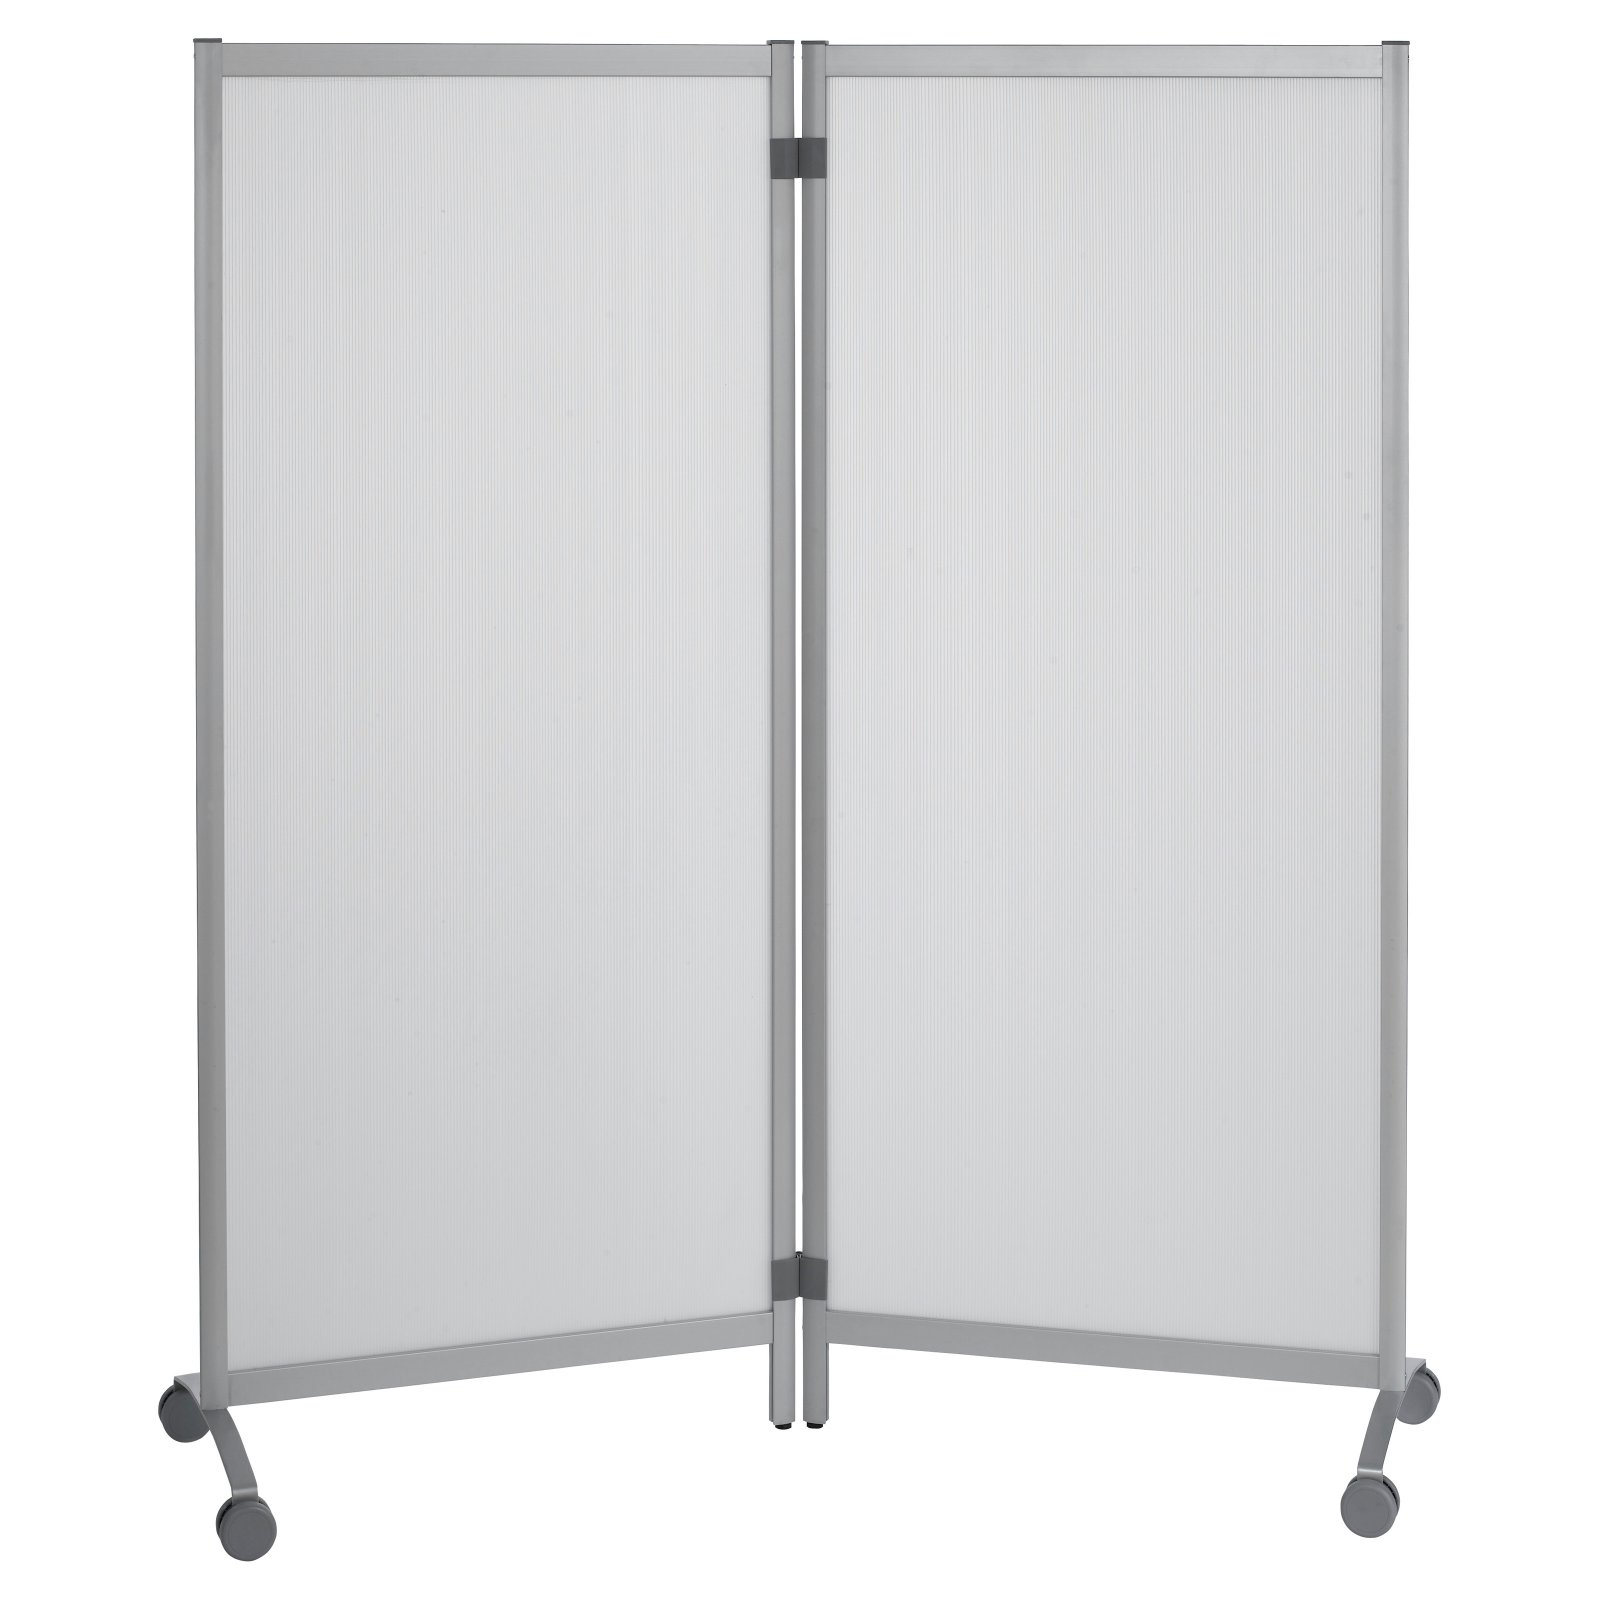 Room Divider Partition paperflow mobile room divider partition - walmart